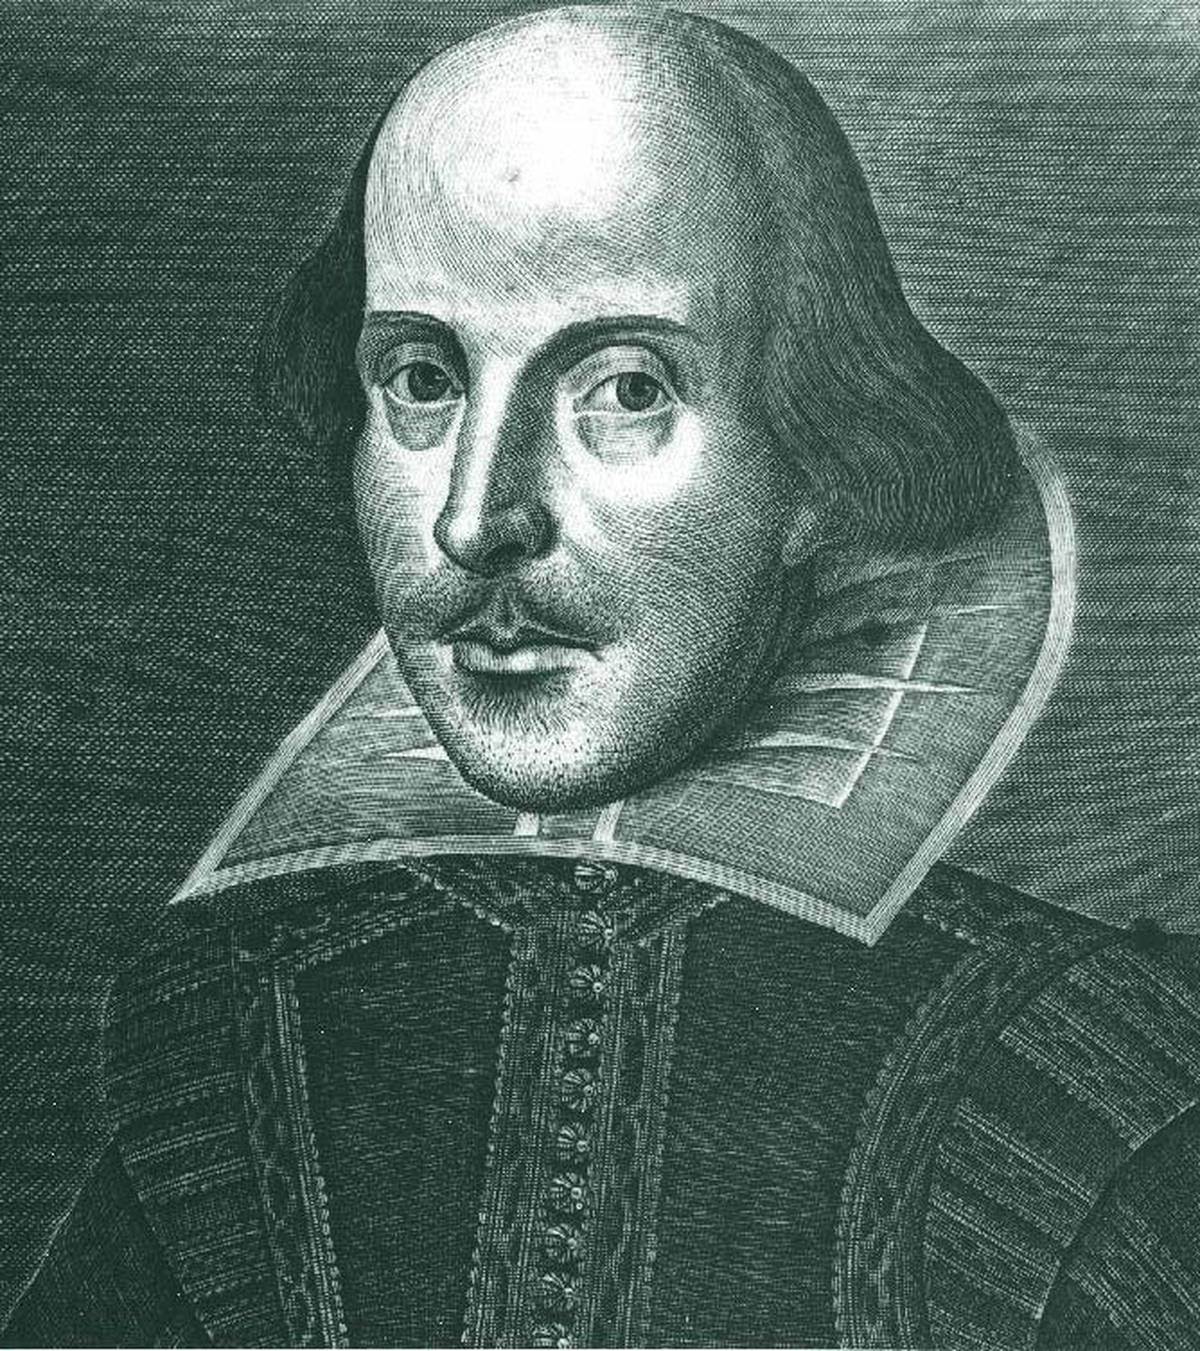 a linguistic analysis of shakespeares works William shakespeare's mastery of the english language is displayed linguistic, grammatical and to dispel lingering doubts about his authorship of many works.